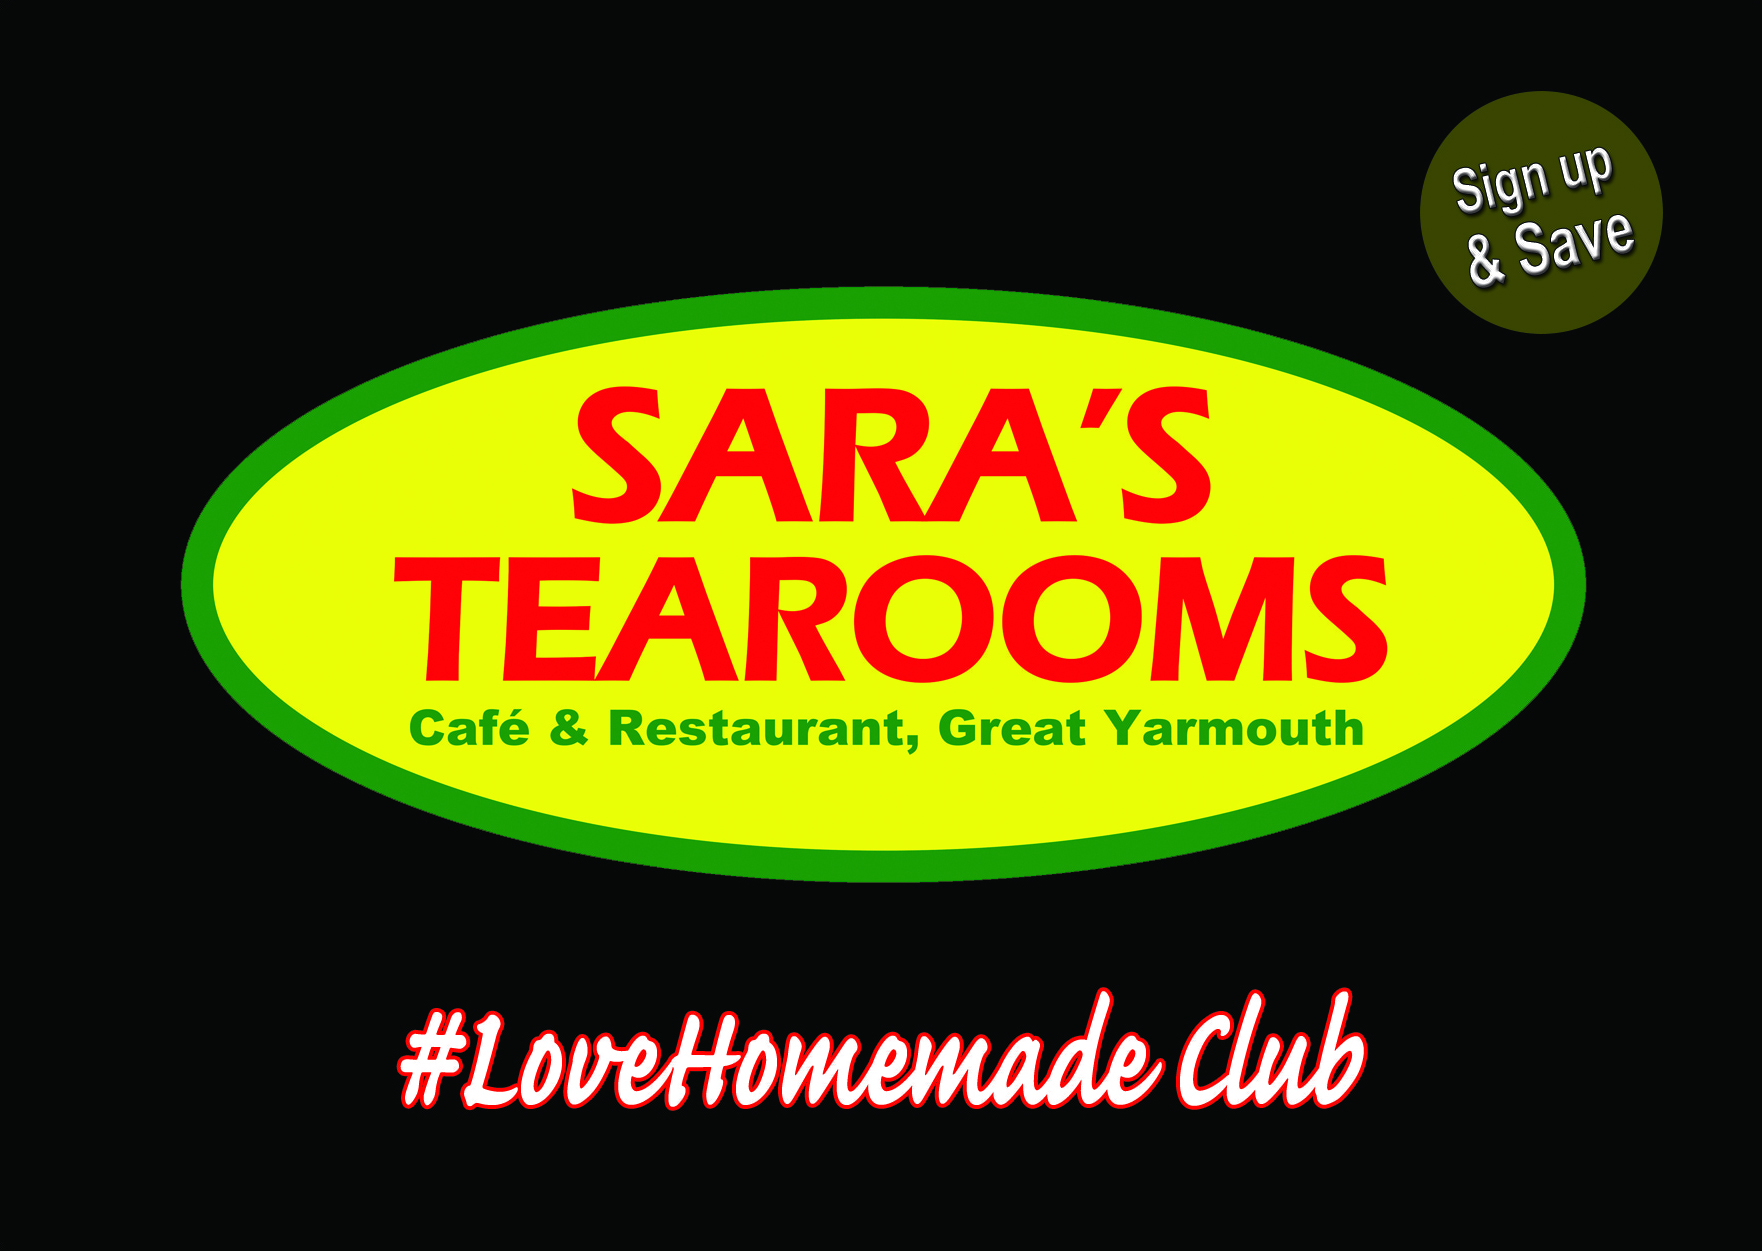 Join our #LoveHomemade Club